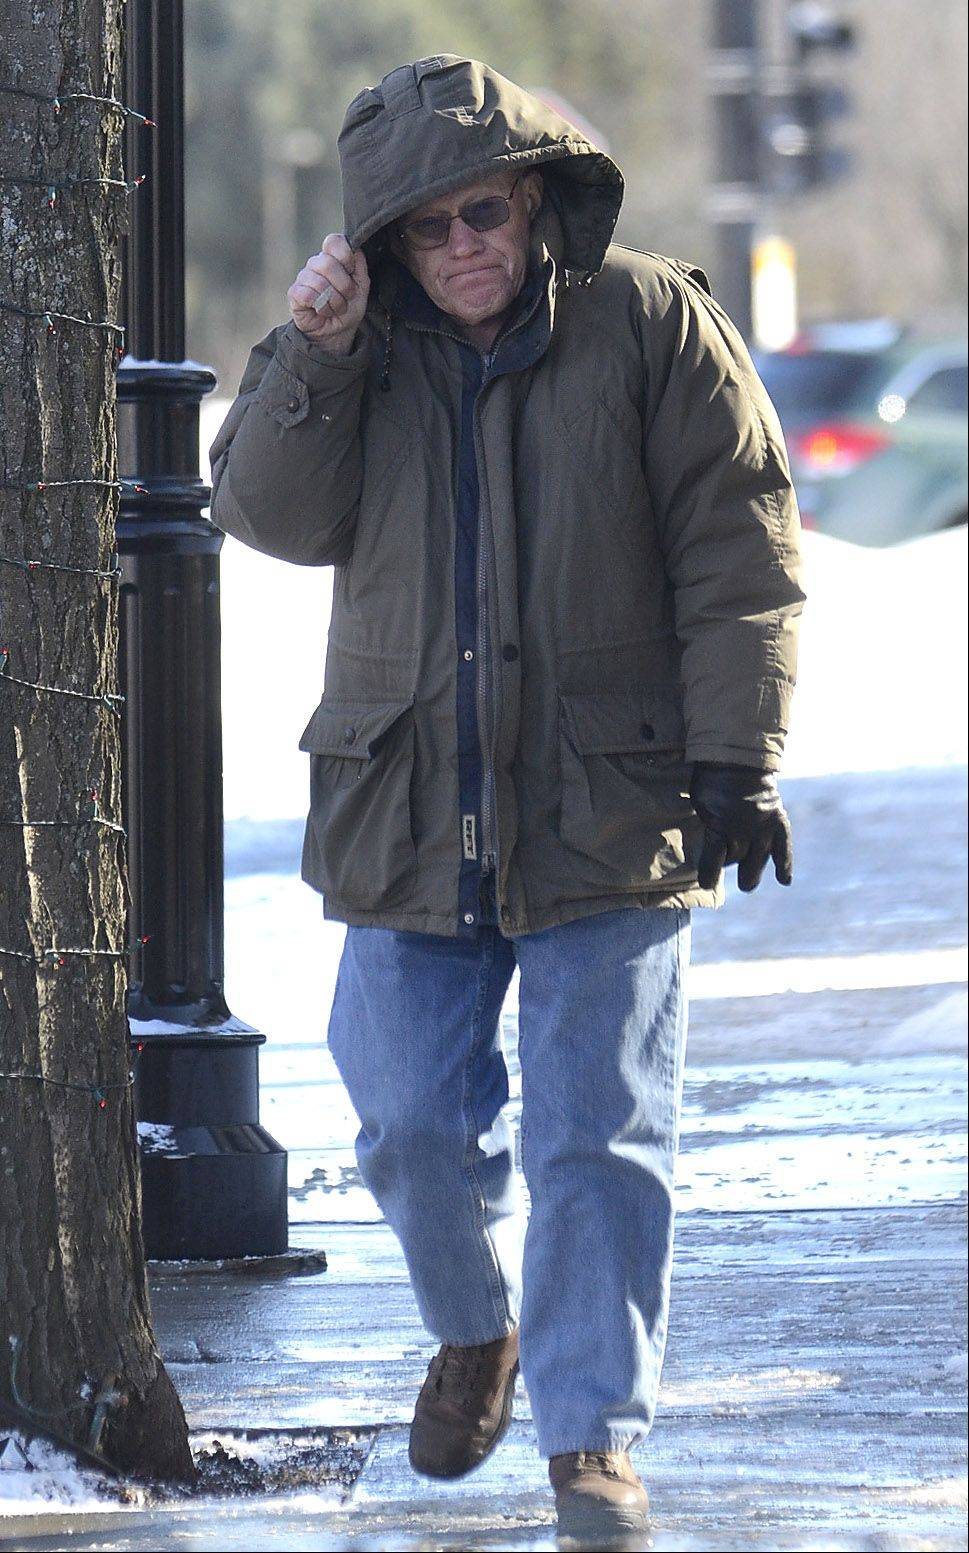 Bob Pinion, of Rolling Meadows, braves the cold while walking in downtown Palatine Thursday.